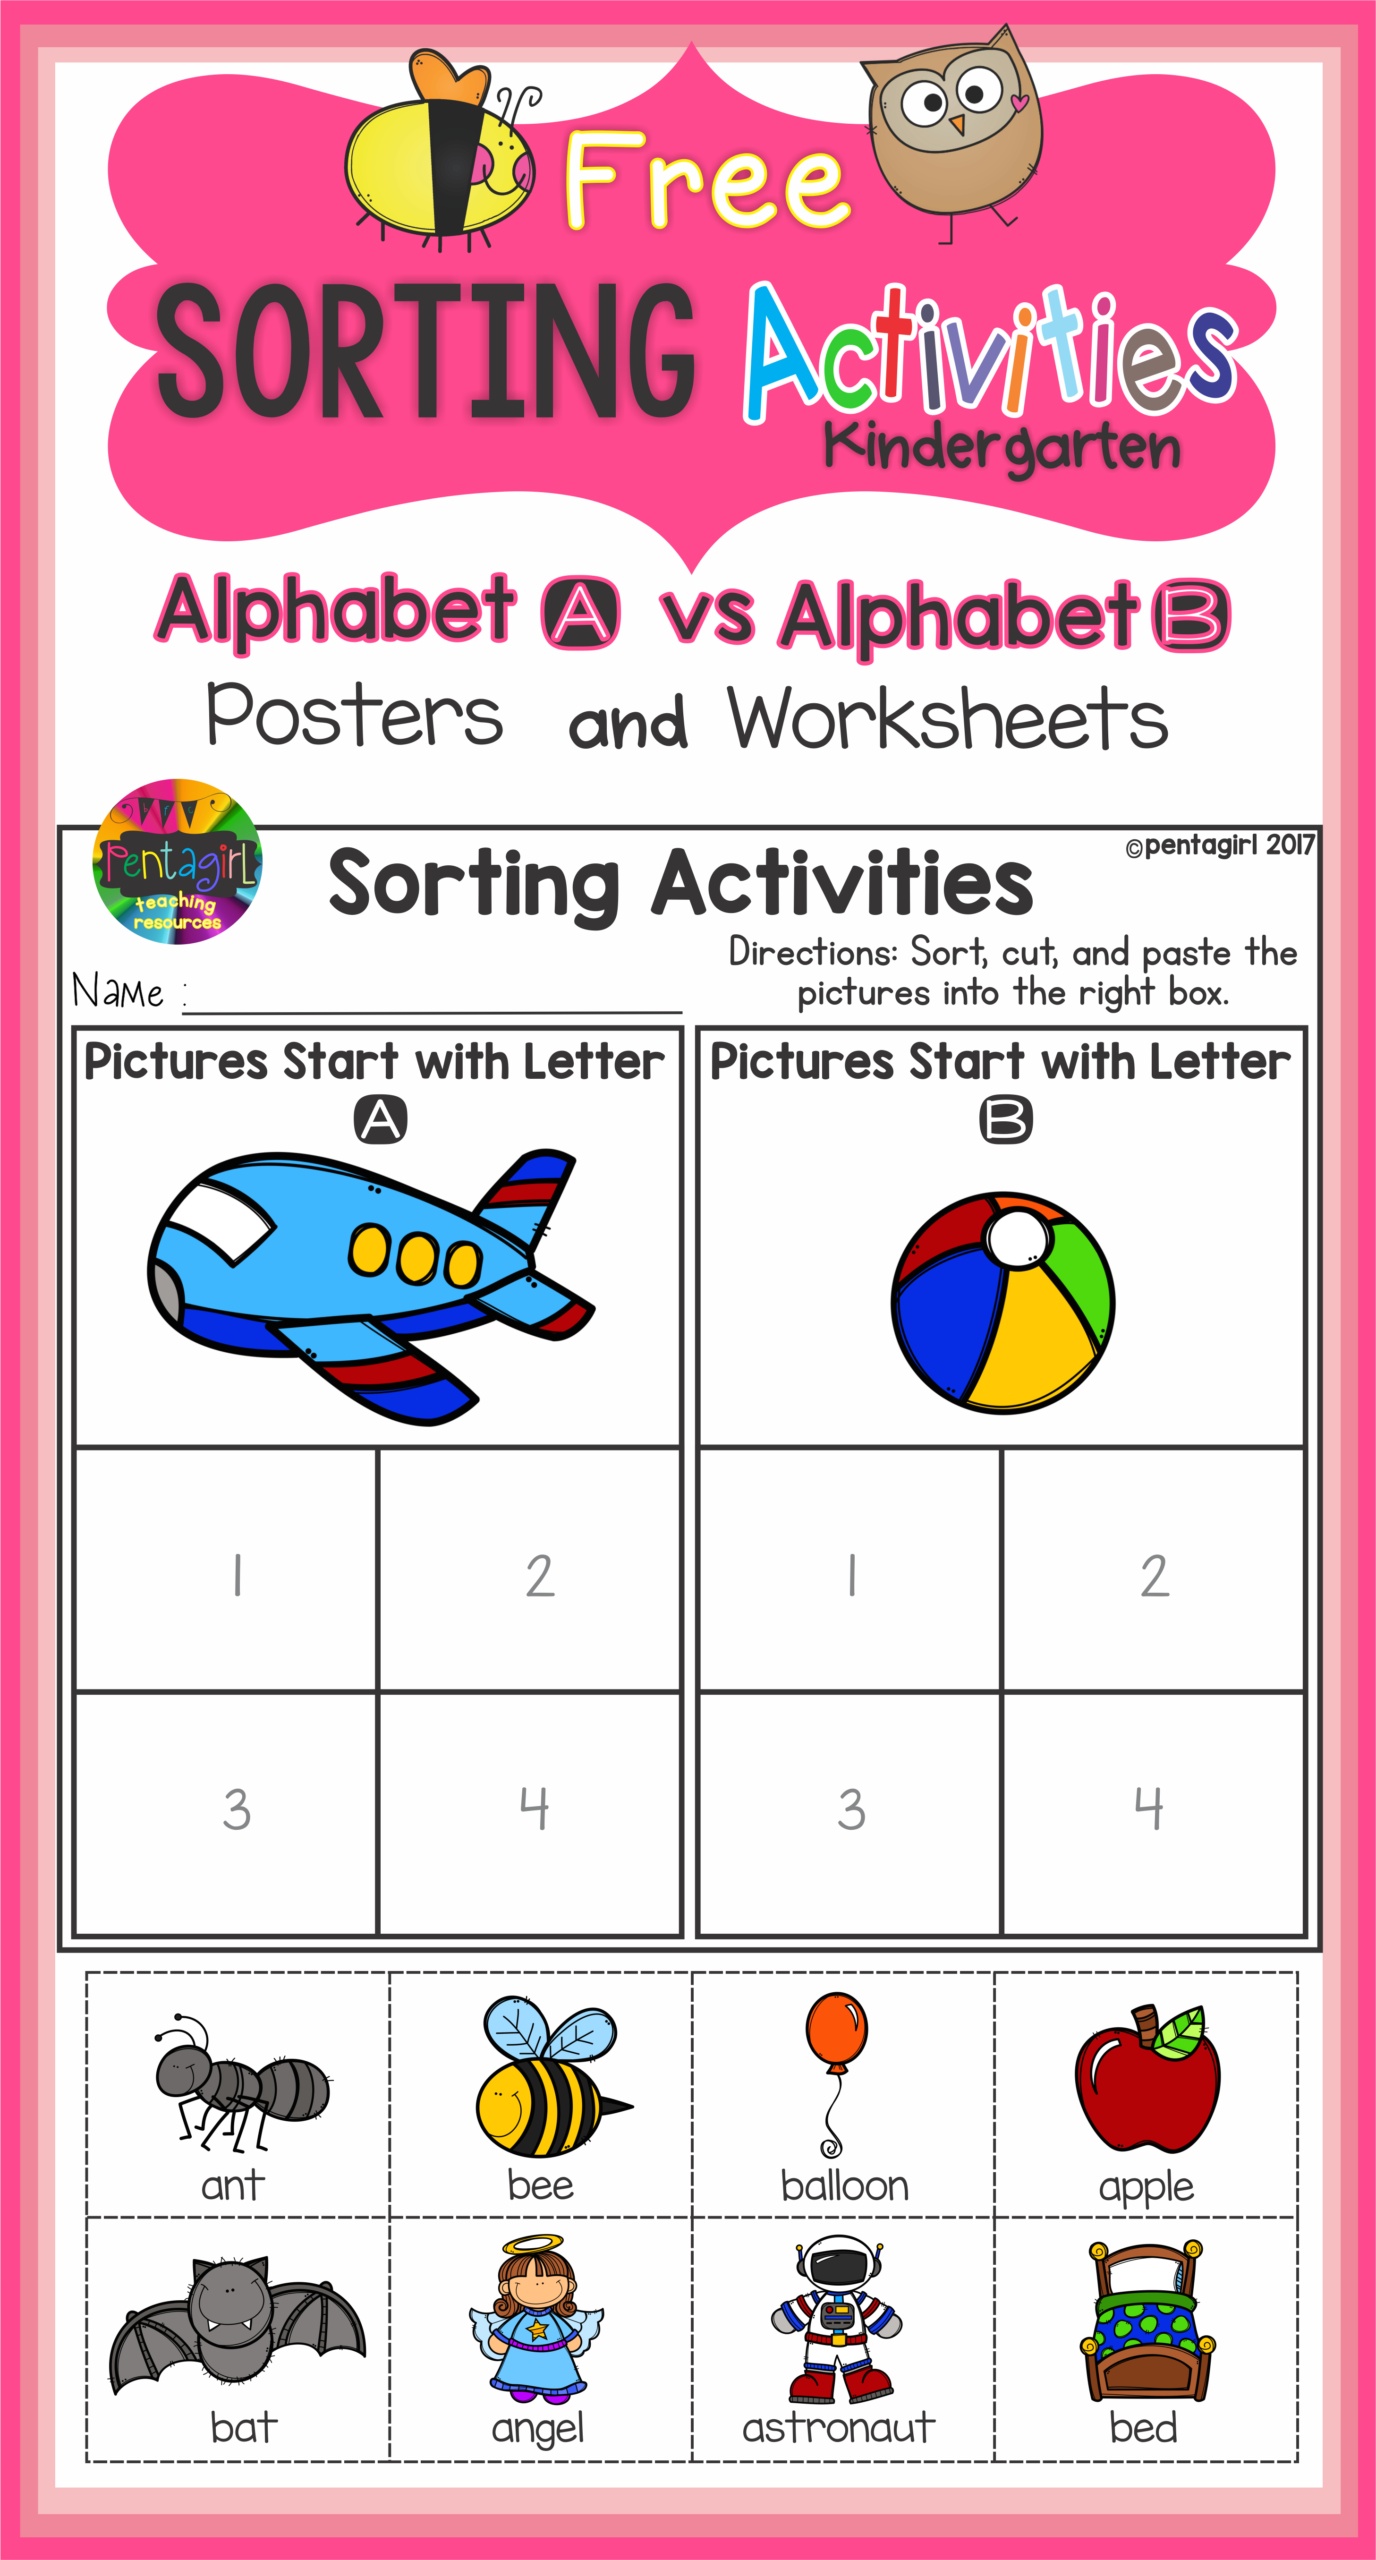 Free Sorting Activities Posters And Worksheets Alphabet A in Alphabet Sorting Worksheets